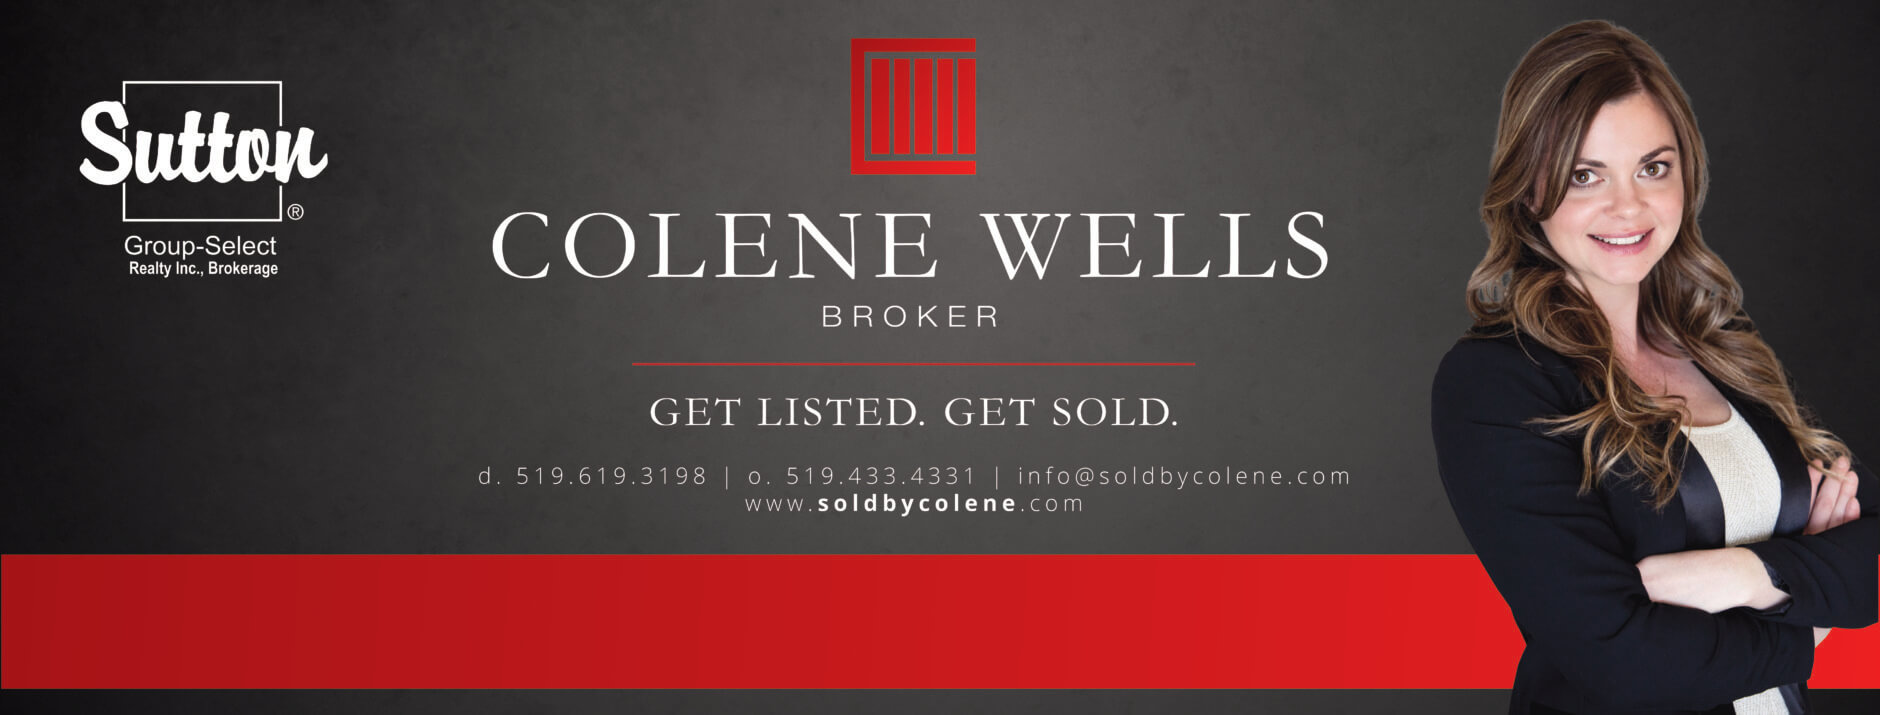 Sutton Group-Select Realty Inc. Brokerage, Independently Owned & Operated. Colene Wells, Broker